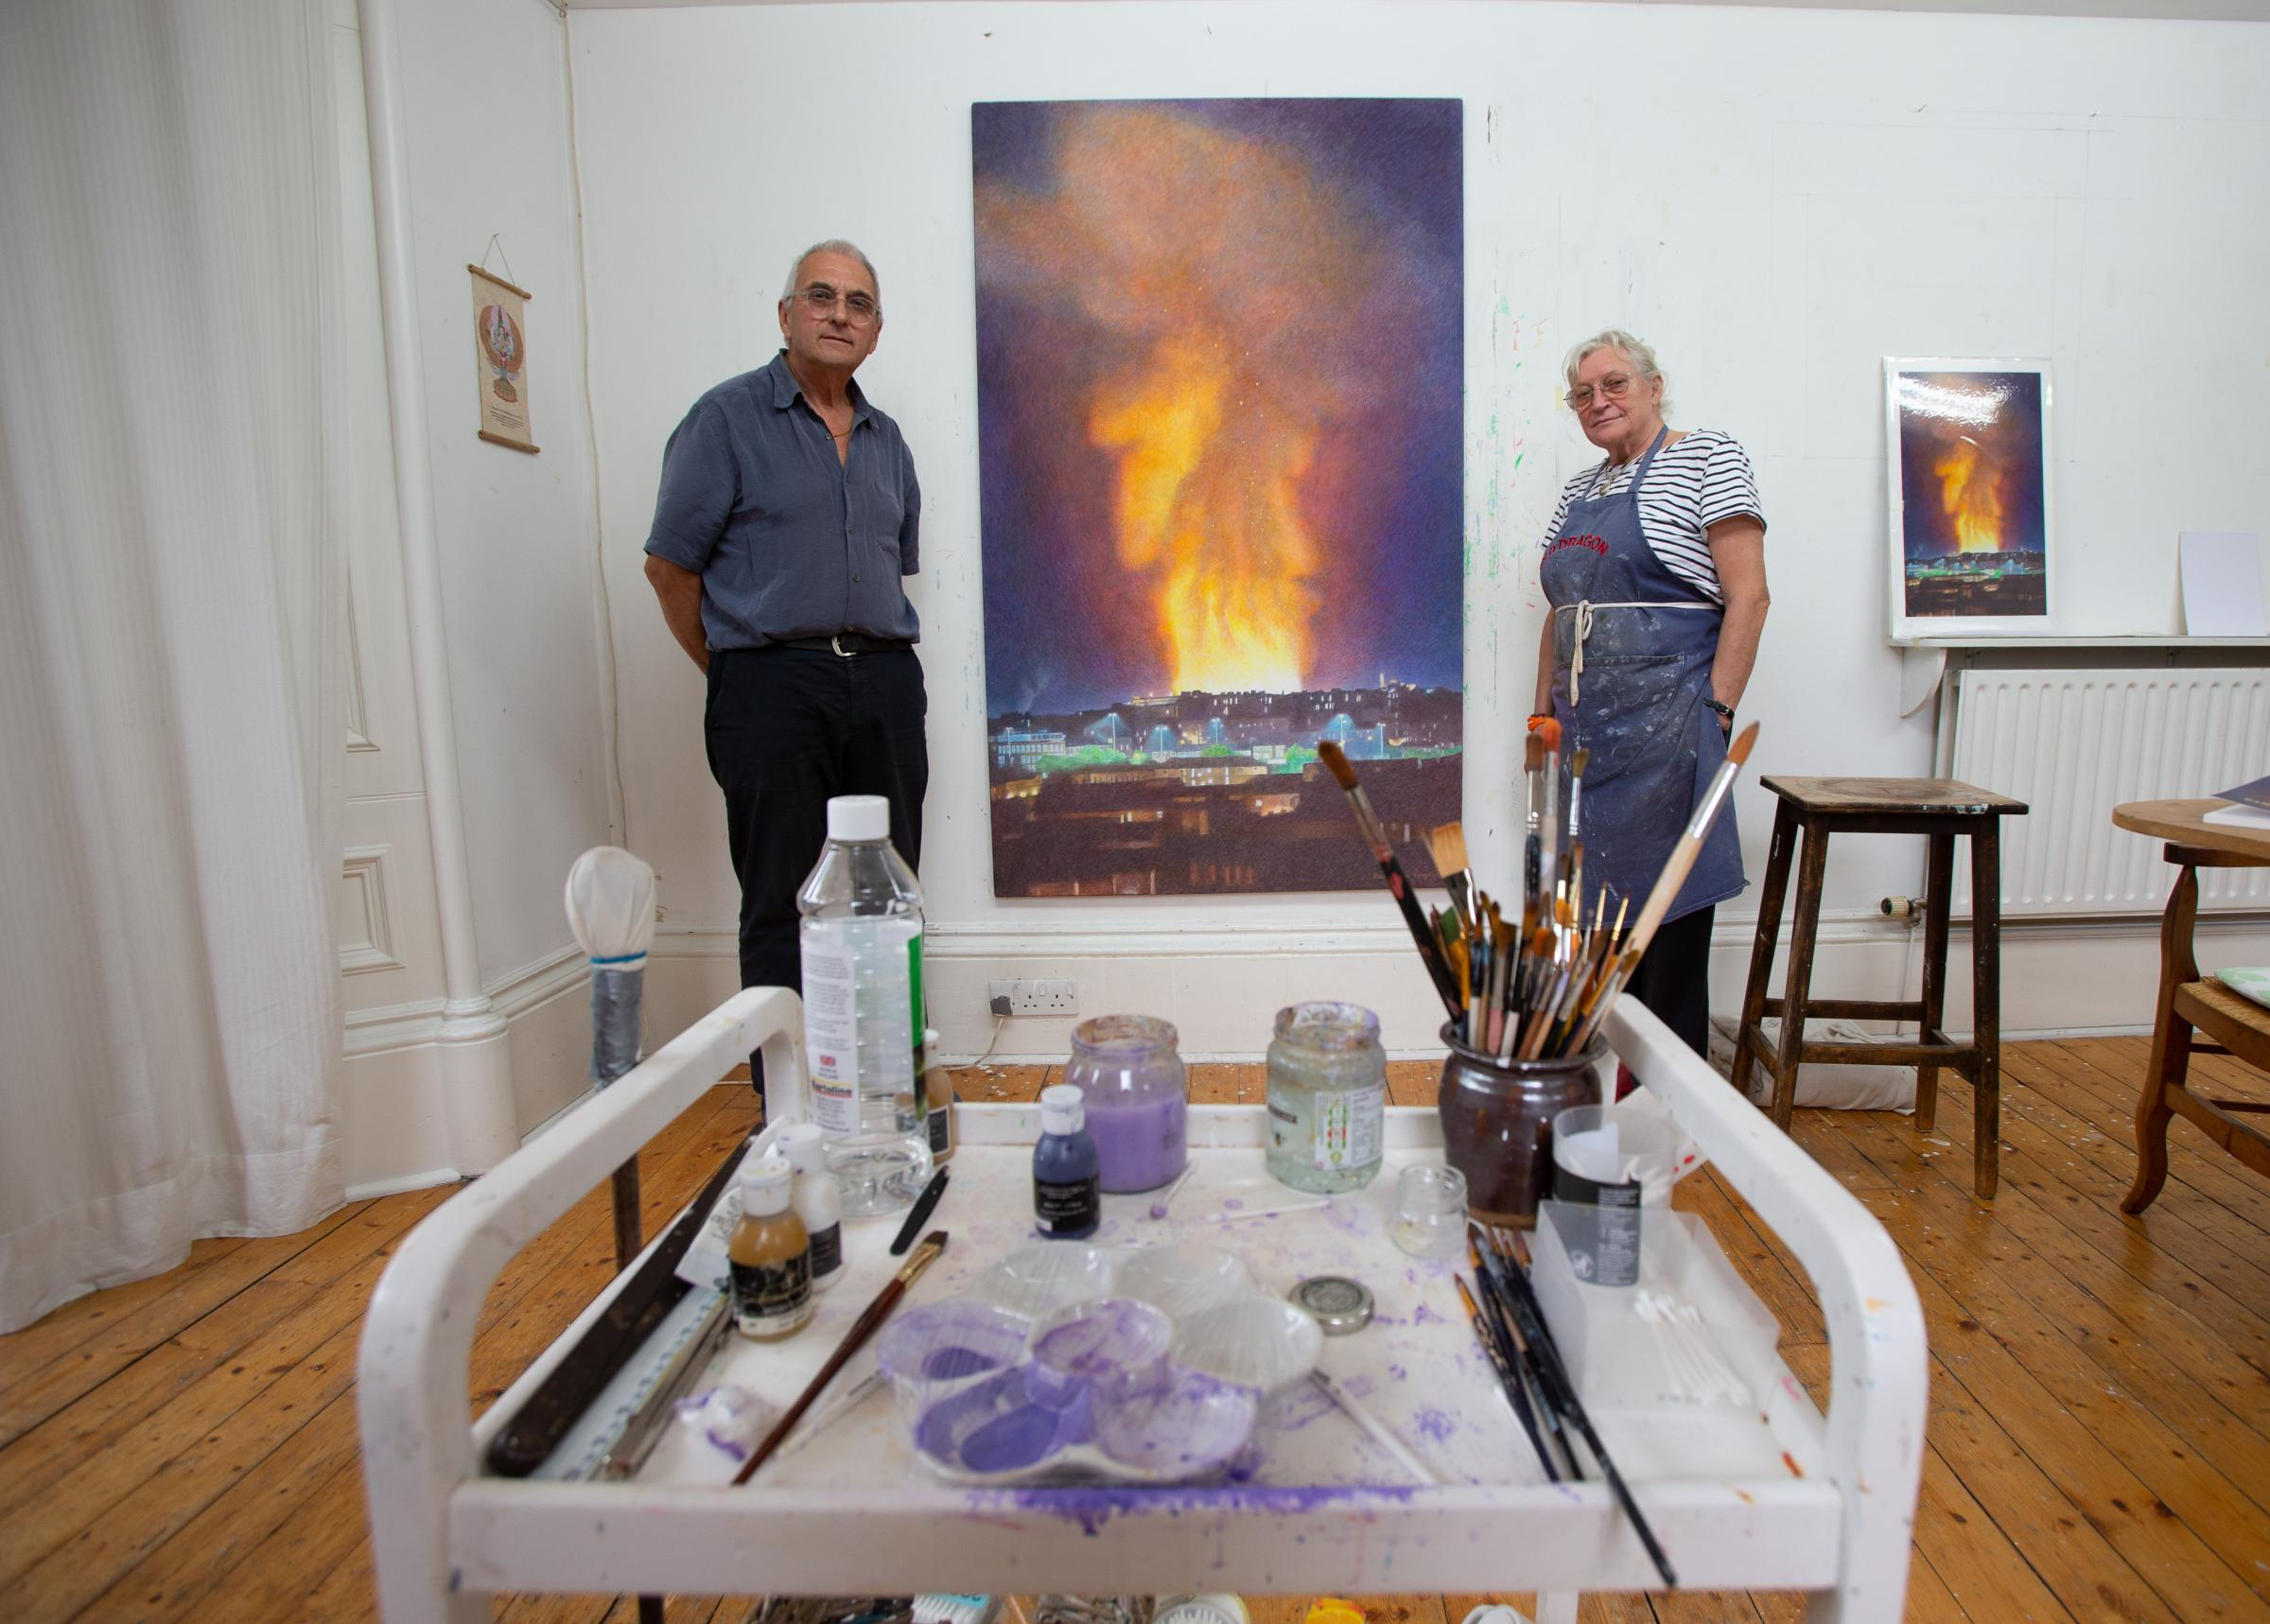 Mackintosh artists paint Glasgow School of Art fire as angry protest